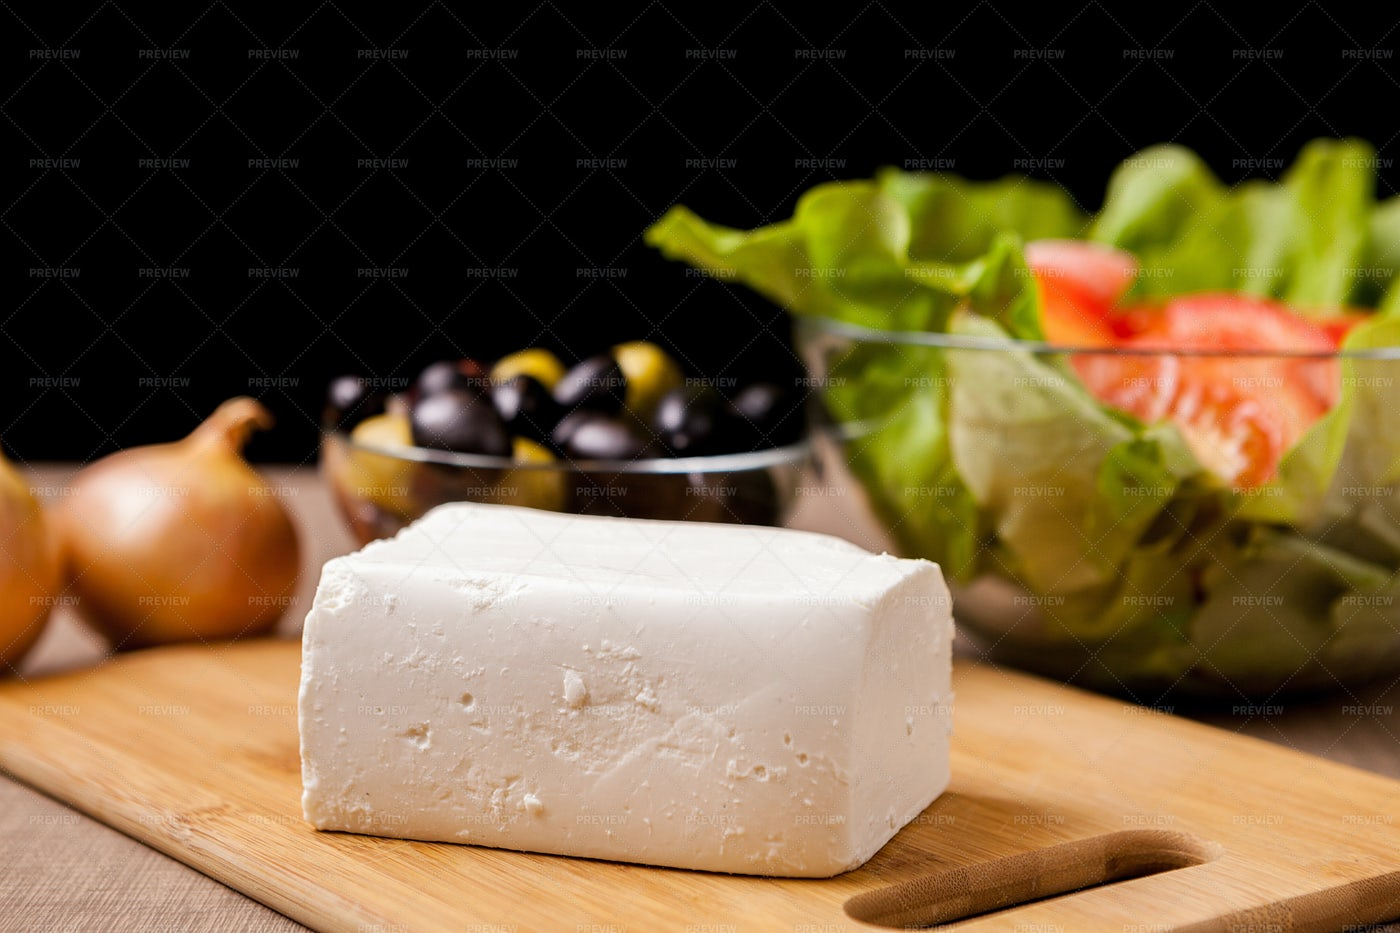 Close Up On Feta Cheese On Wooden Board: Stock Photos